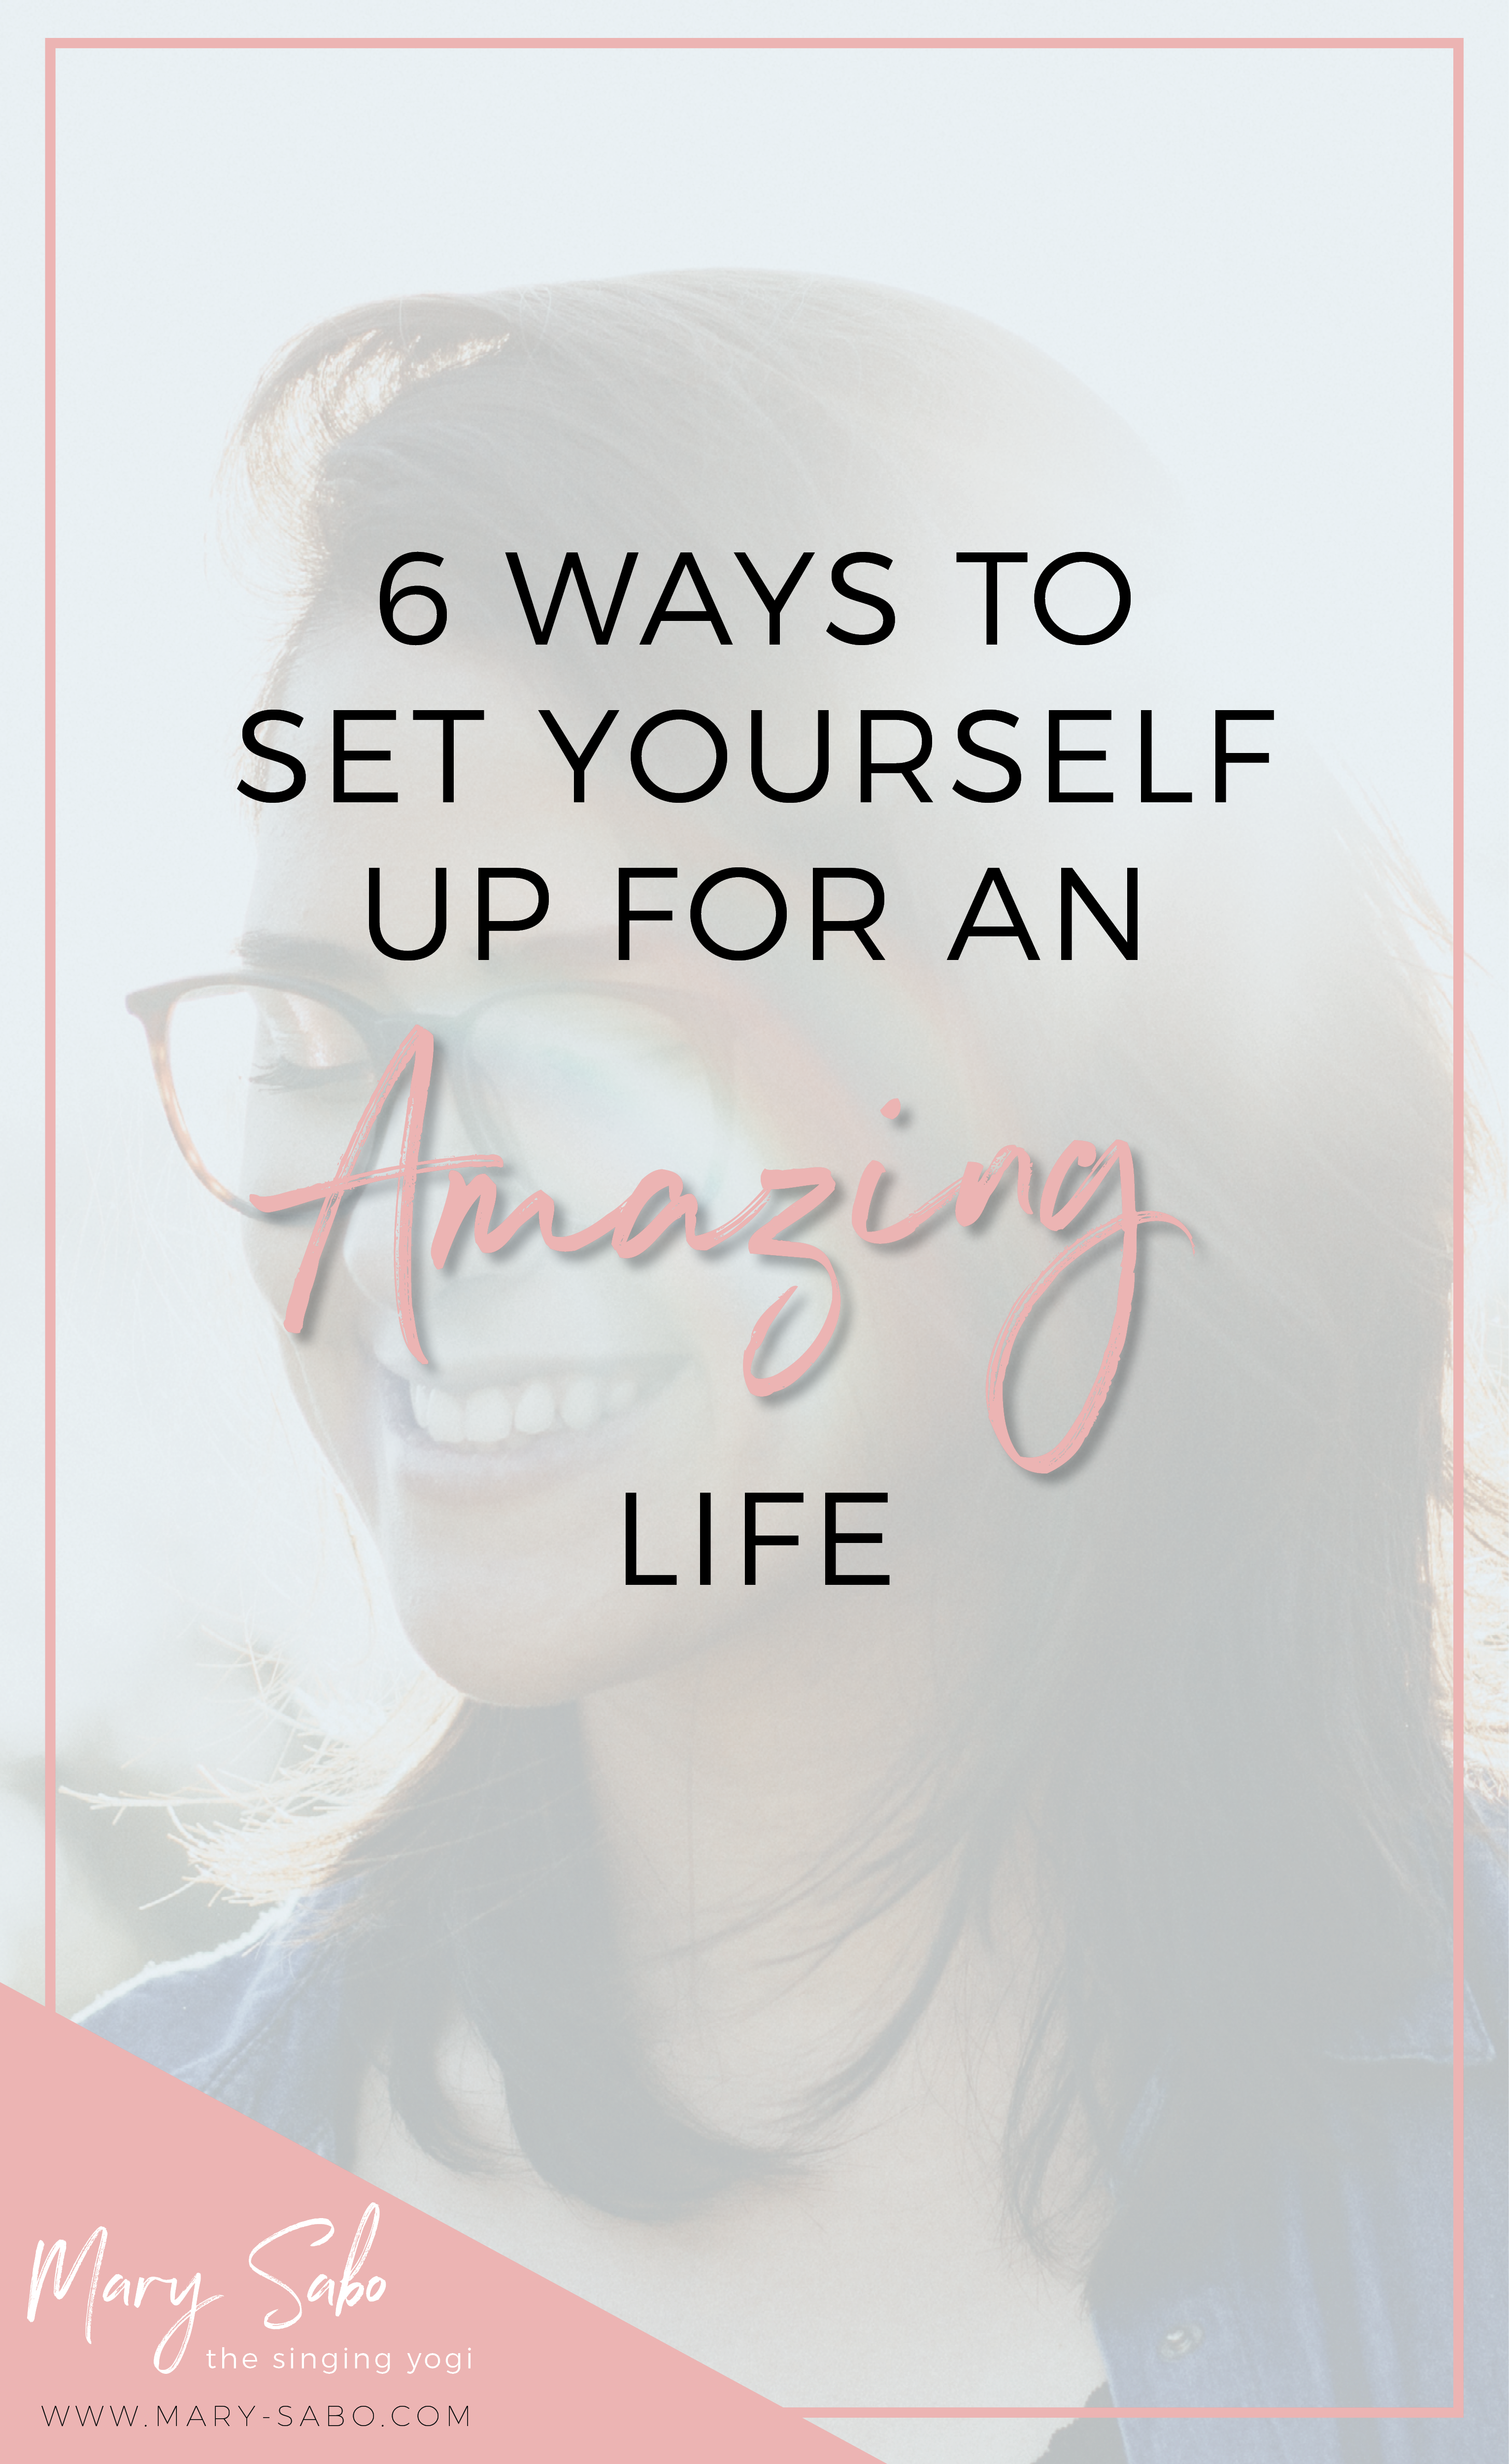 6 Ways to Set Yourself Up for an Amazing Life | Mary Sabo Yoga Instructor